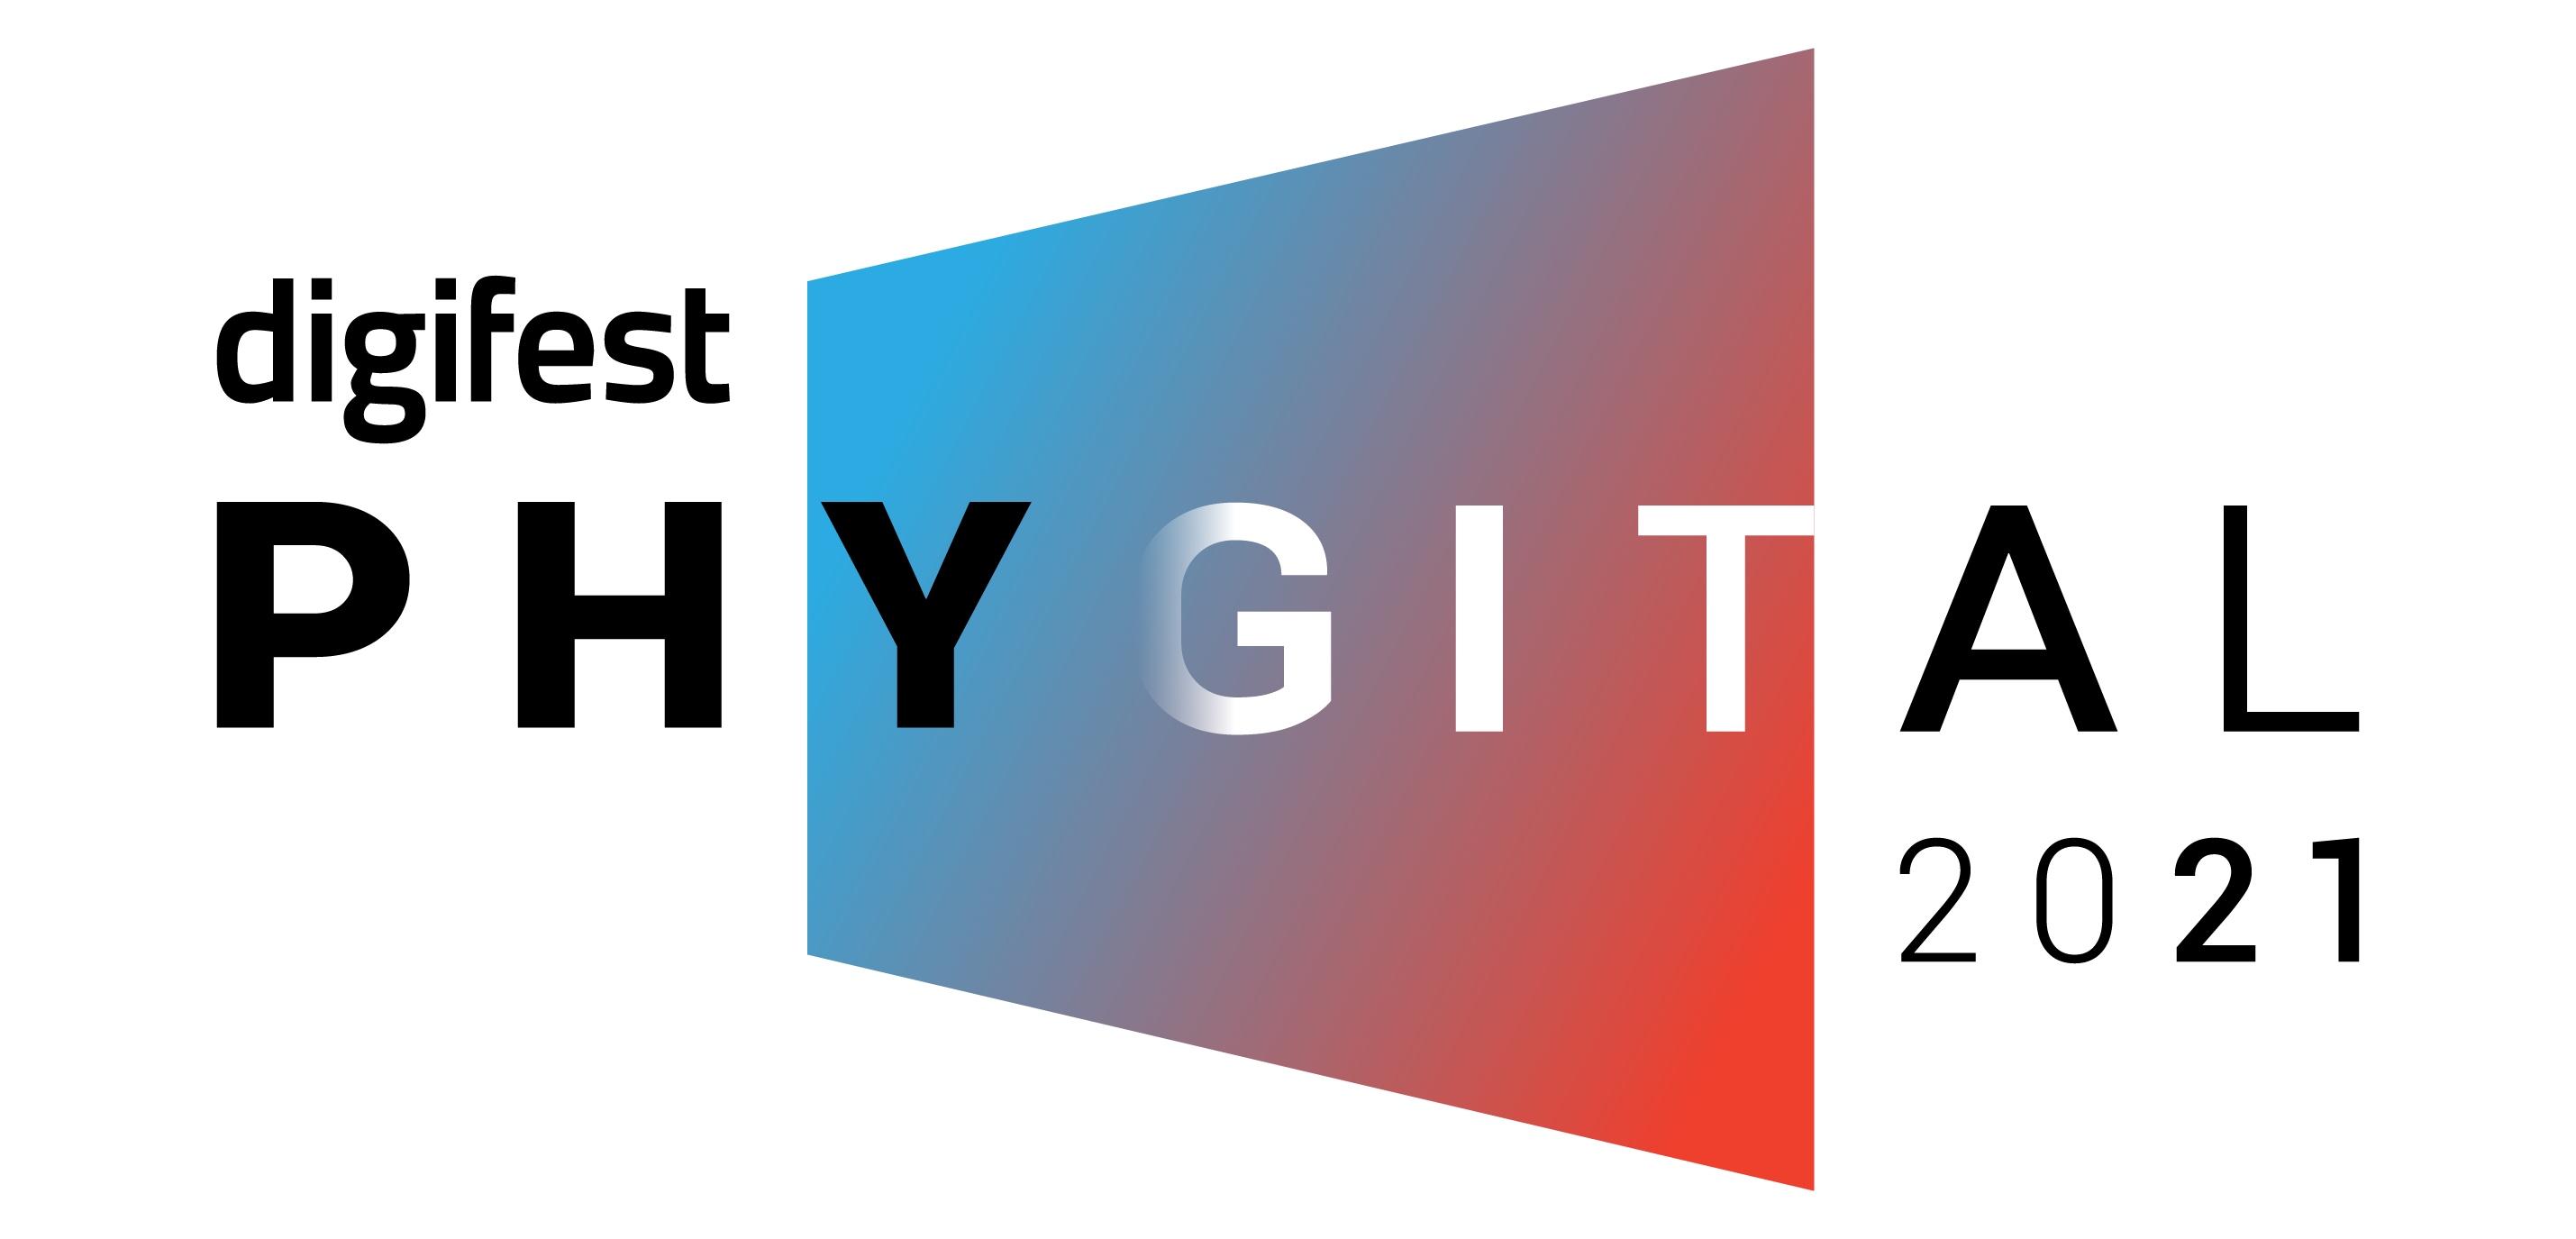 Digifest logo of rectangle blue and red gradient. Text says digifest, Phygital and 2021.